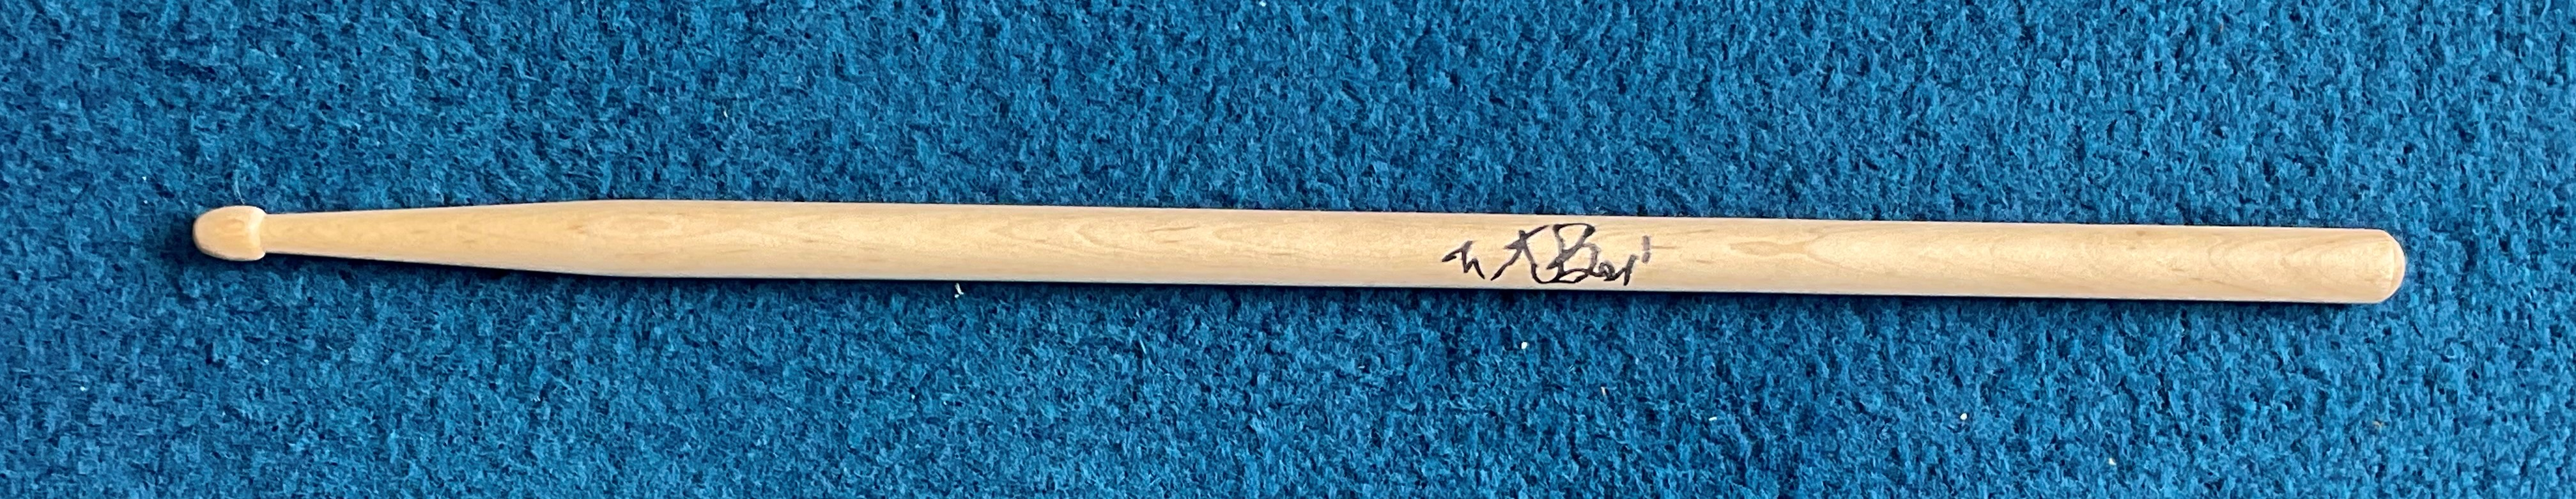 Charlie Watts signed drumstick. Charles Robert Watts (born 2 June 1941) is an English drummer,